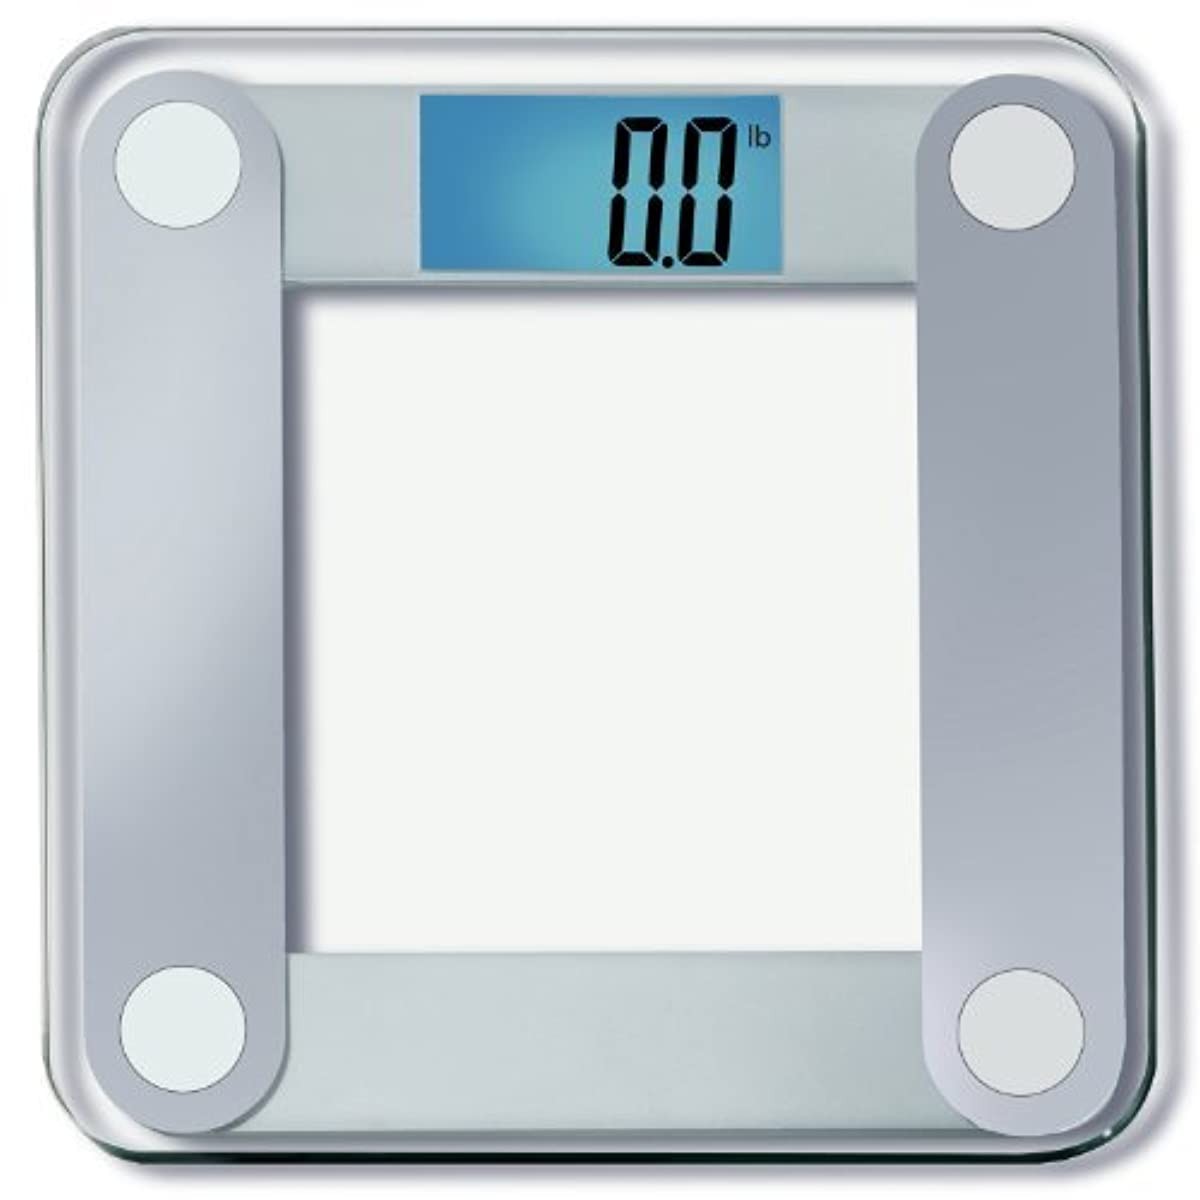 Details about eatsmart precision digital bathroom scale with extra large lighted display free